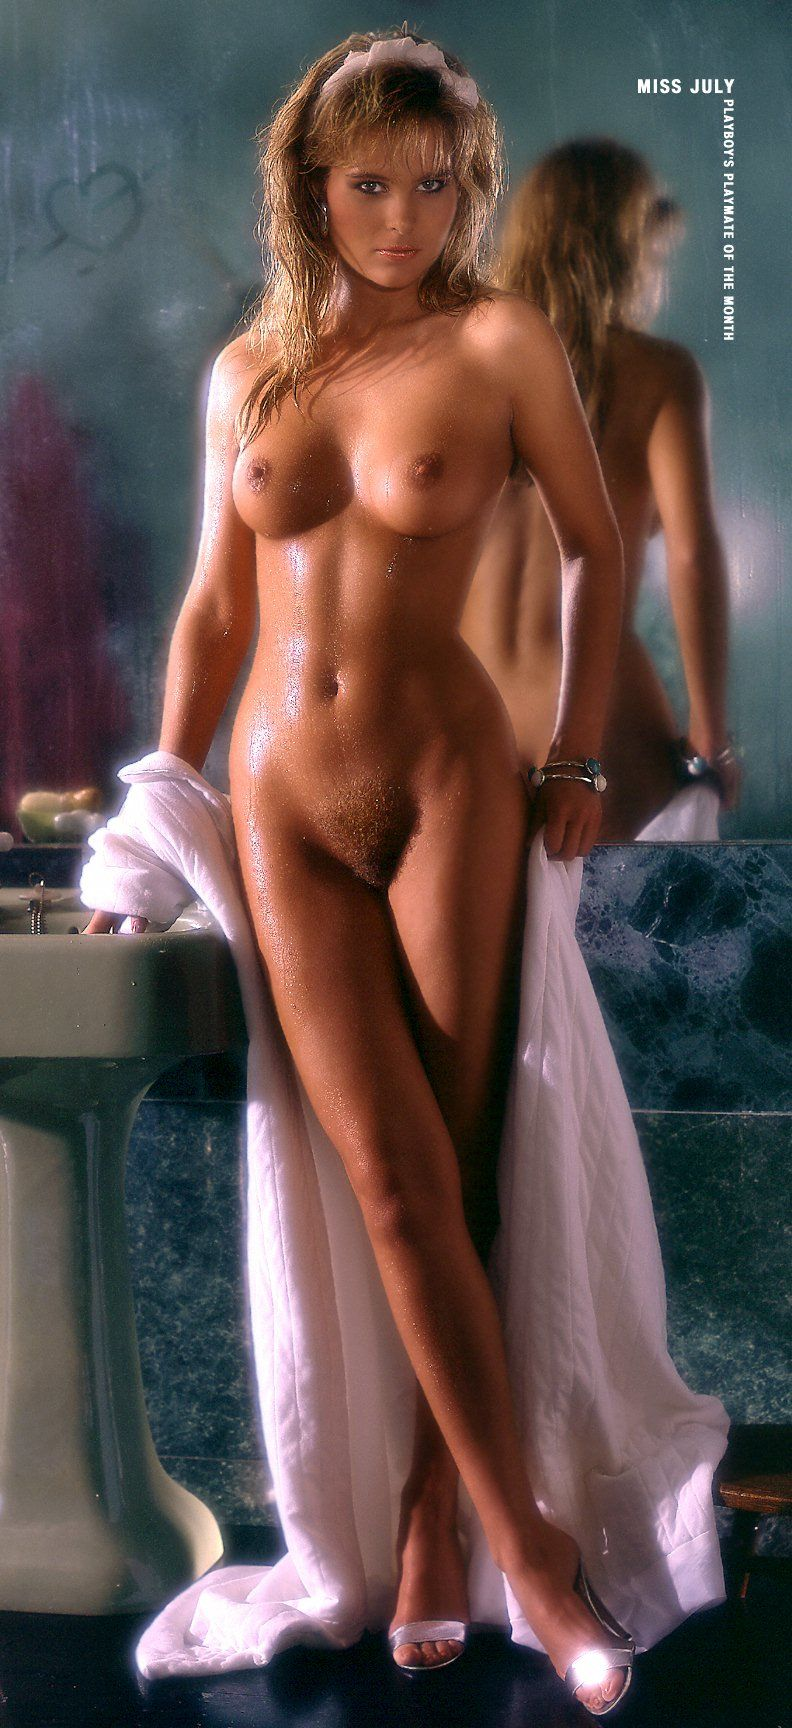 red head playmates nude